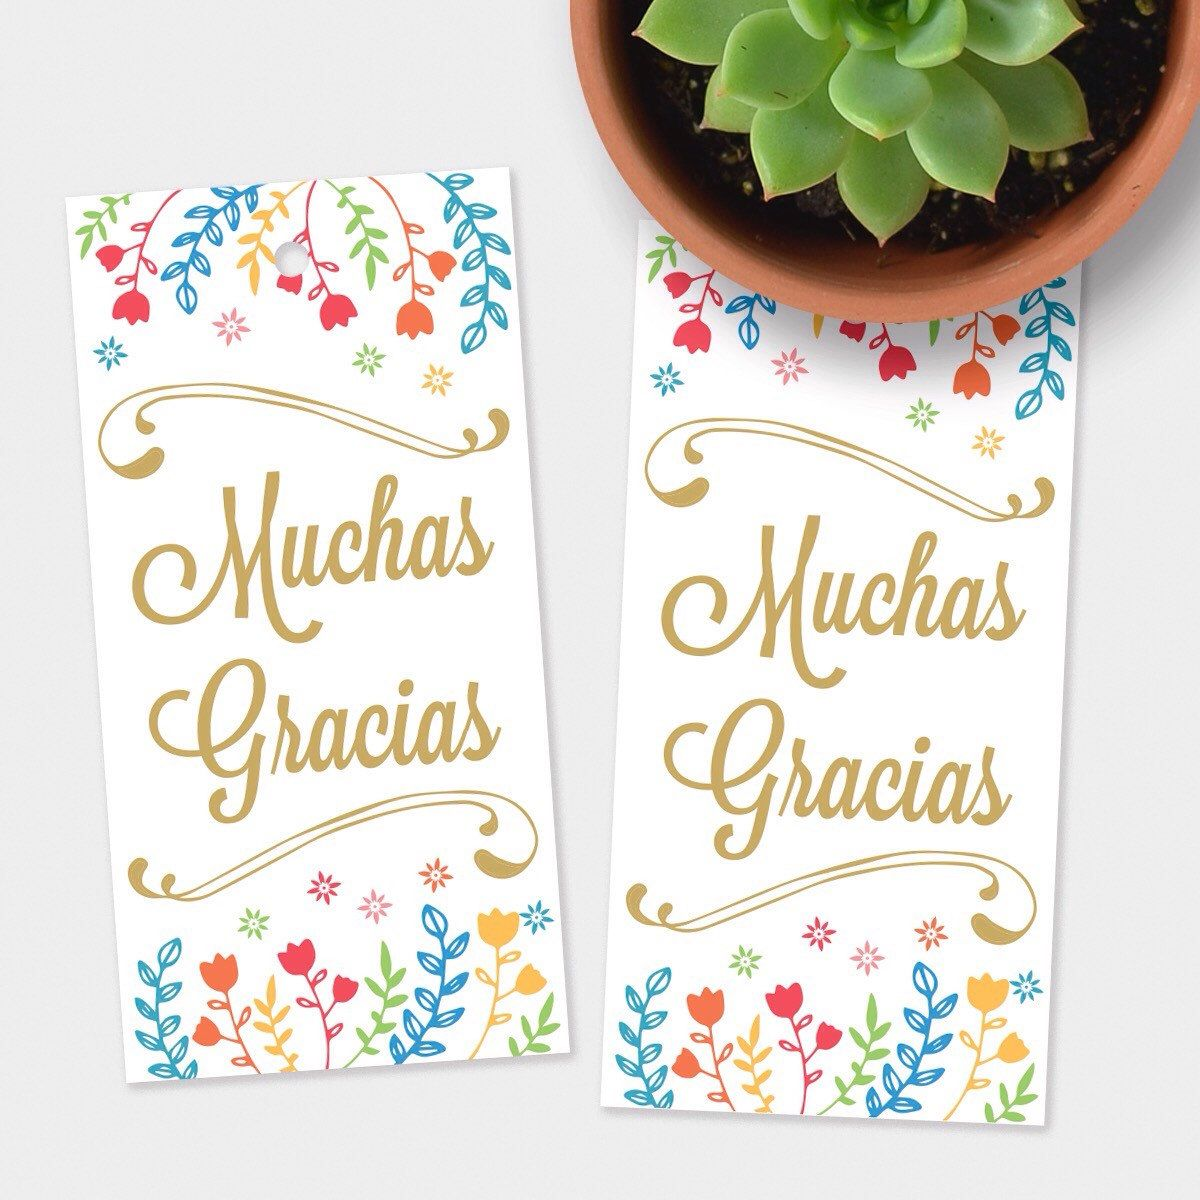 """These new """"Muchas Gracias"""" tags are so cute and perfect for summer!"""